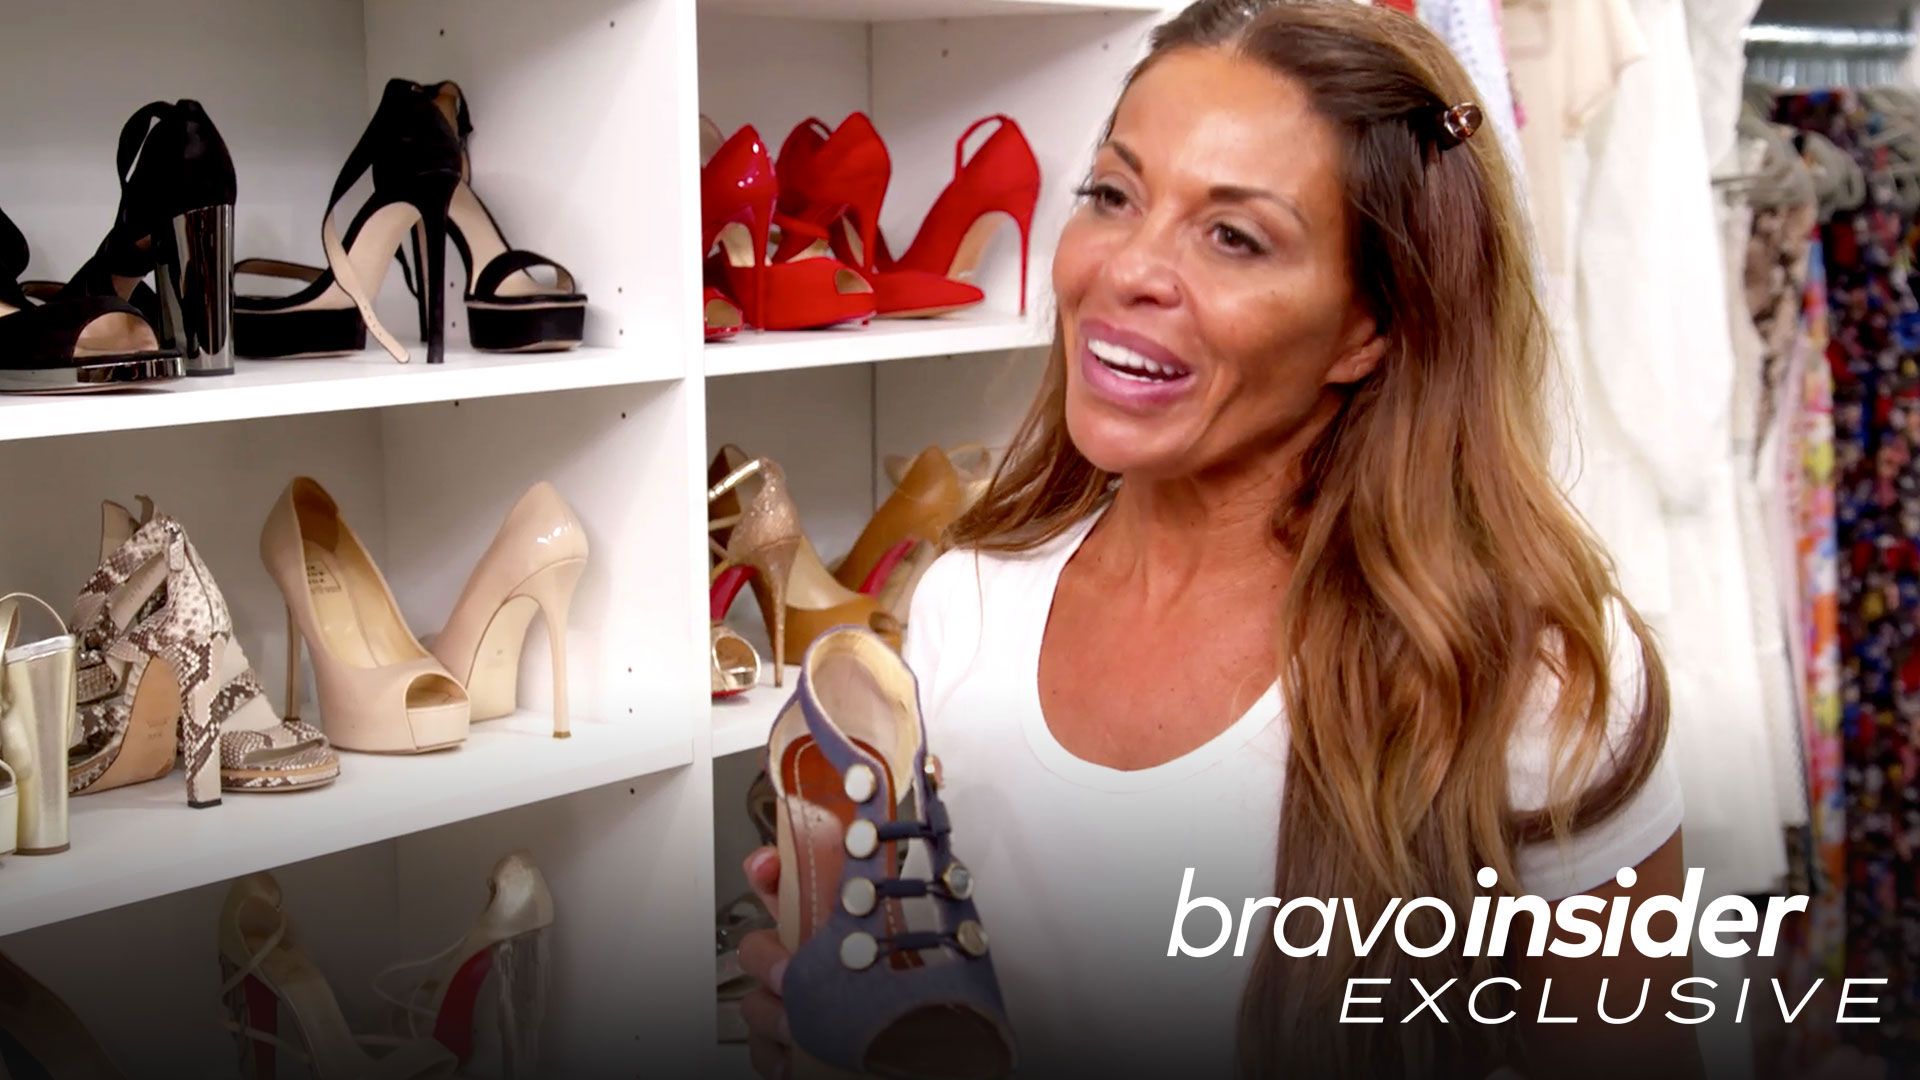 Go Inside Dolores Catania's Huge Closet at Boyfriend David Principe's House